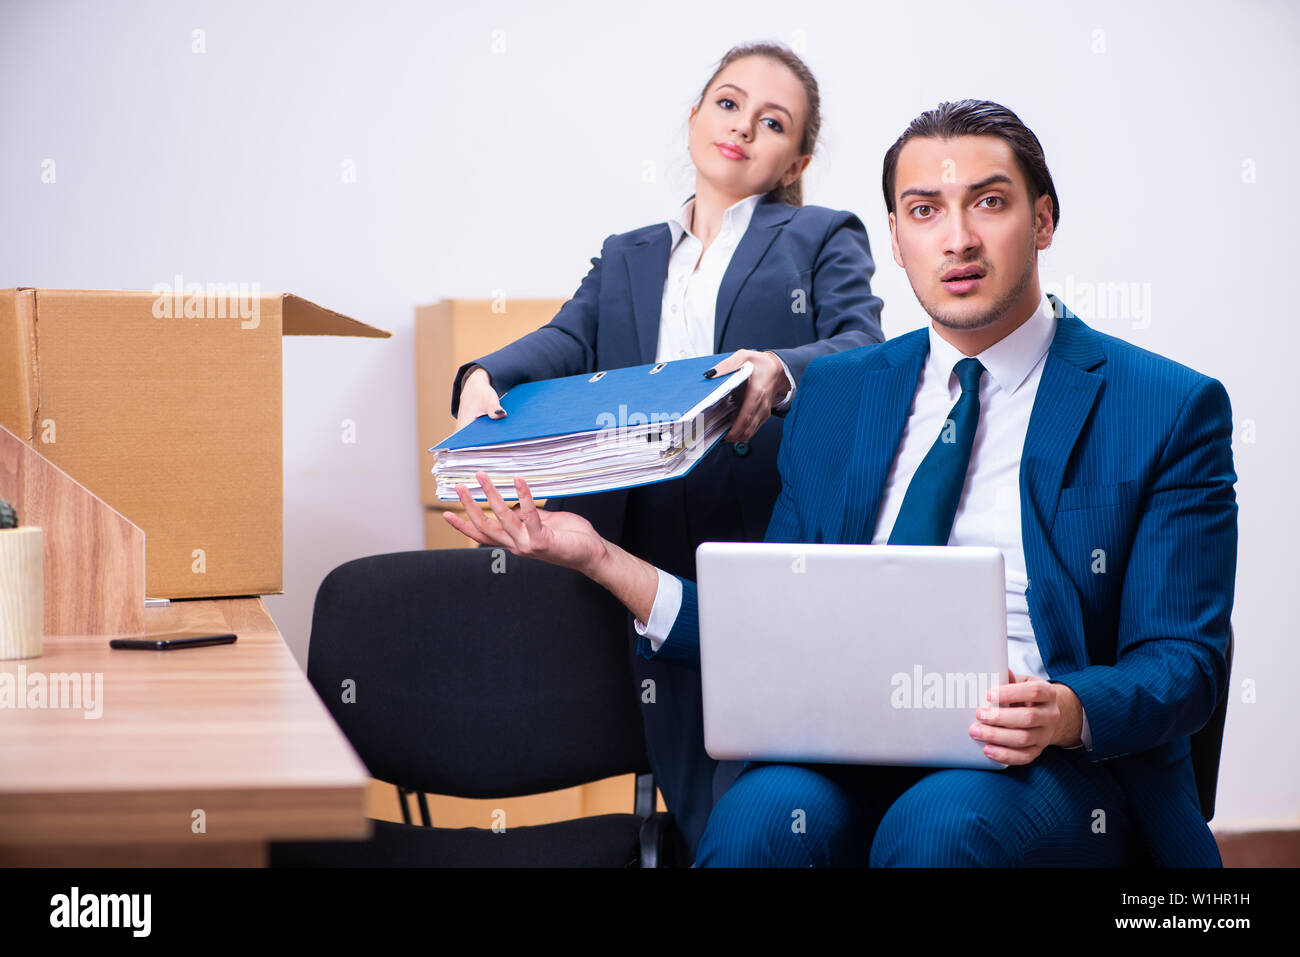 Two employees being fired from their work - Stock Image